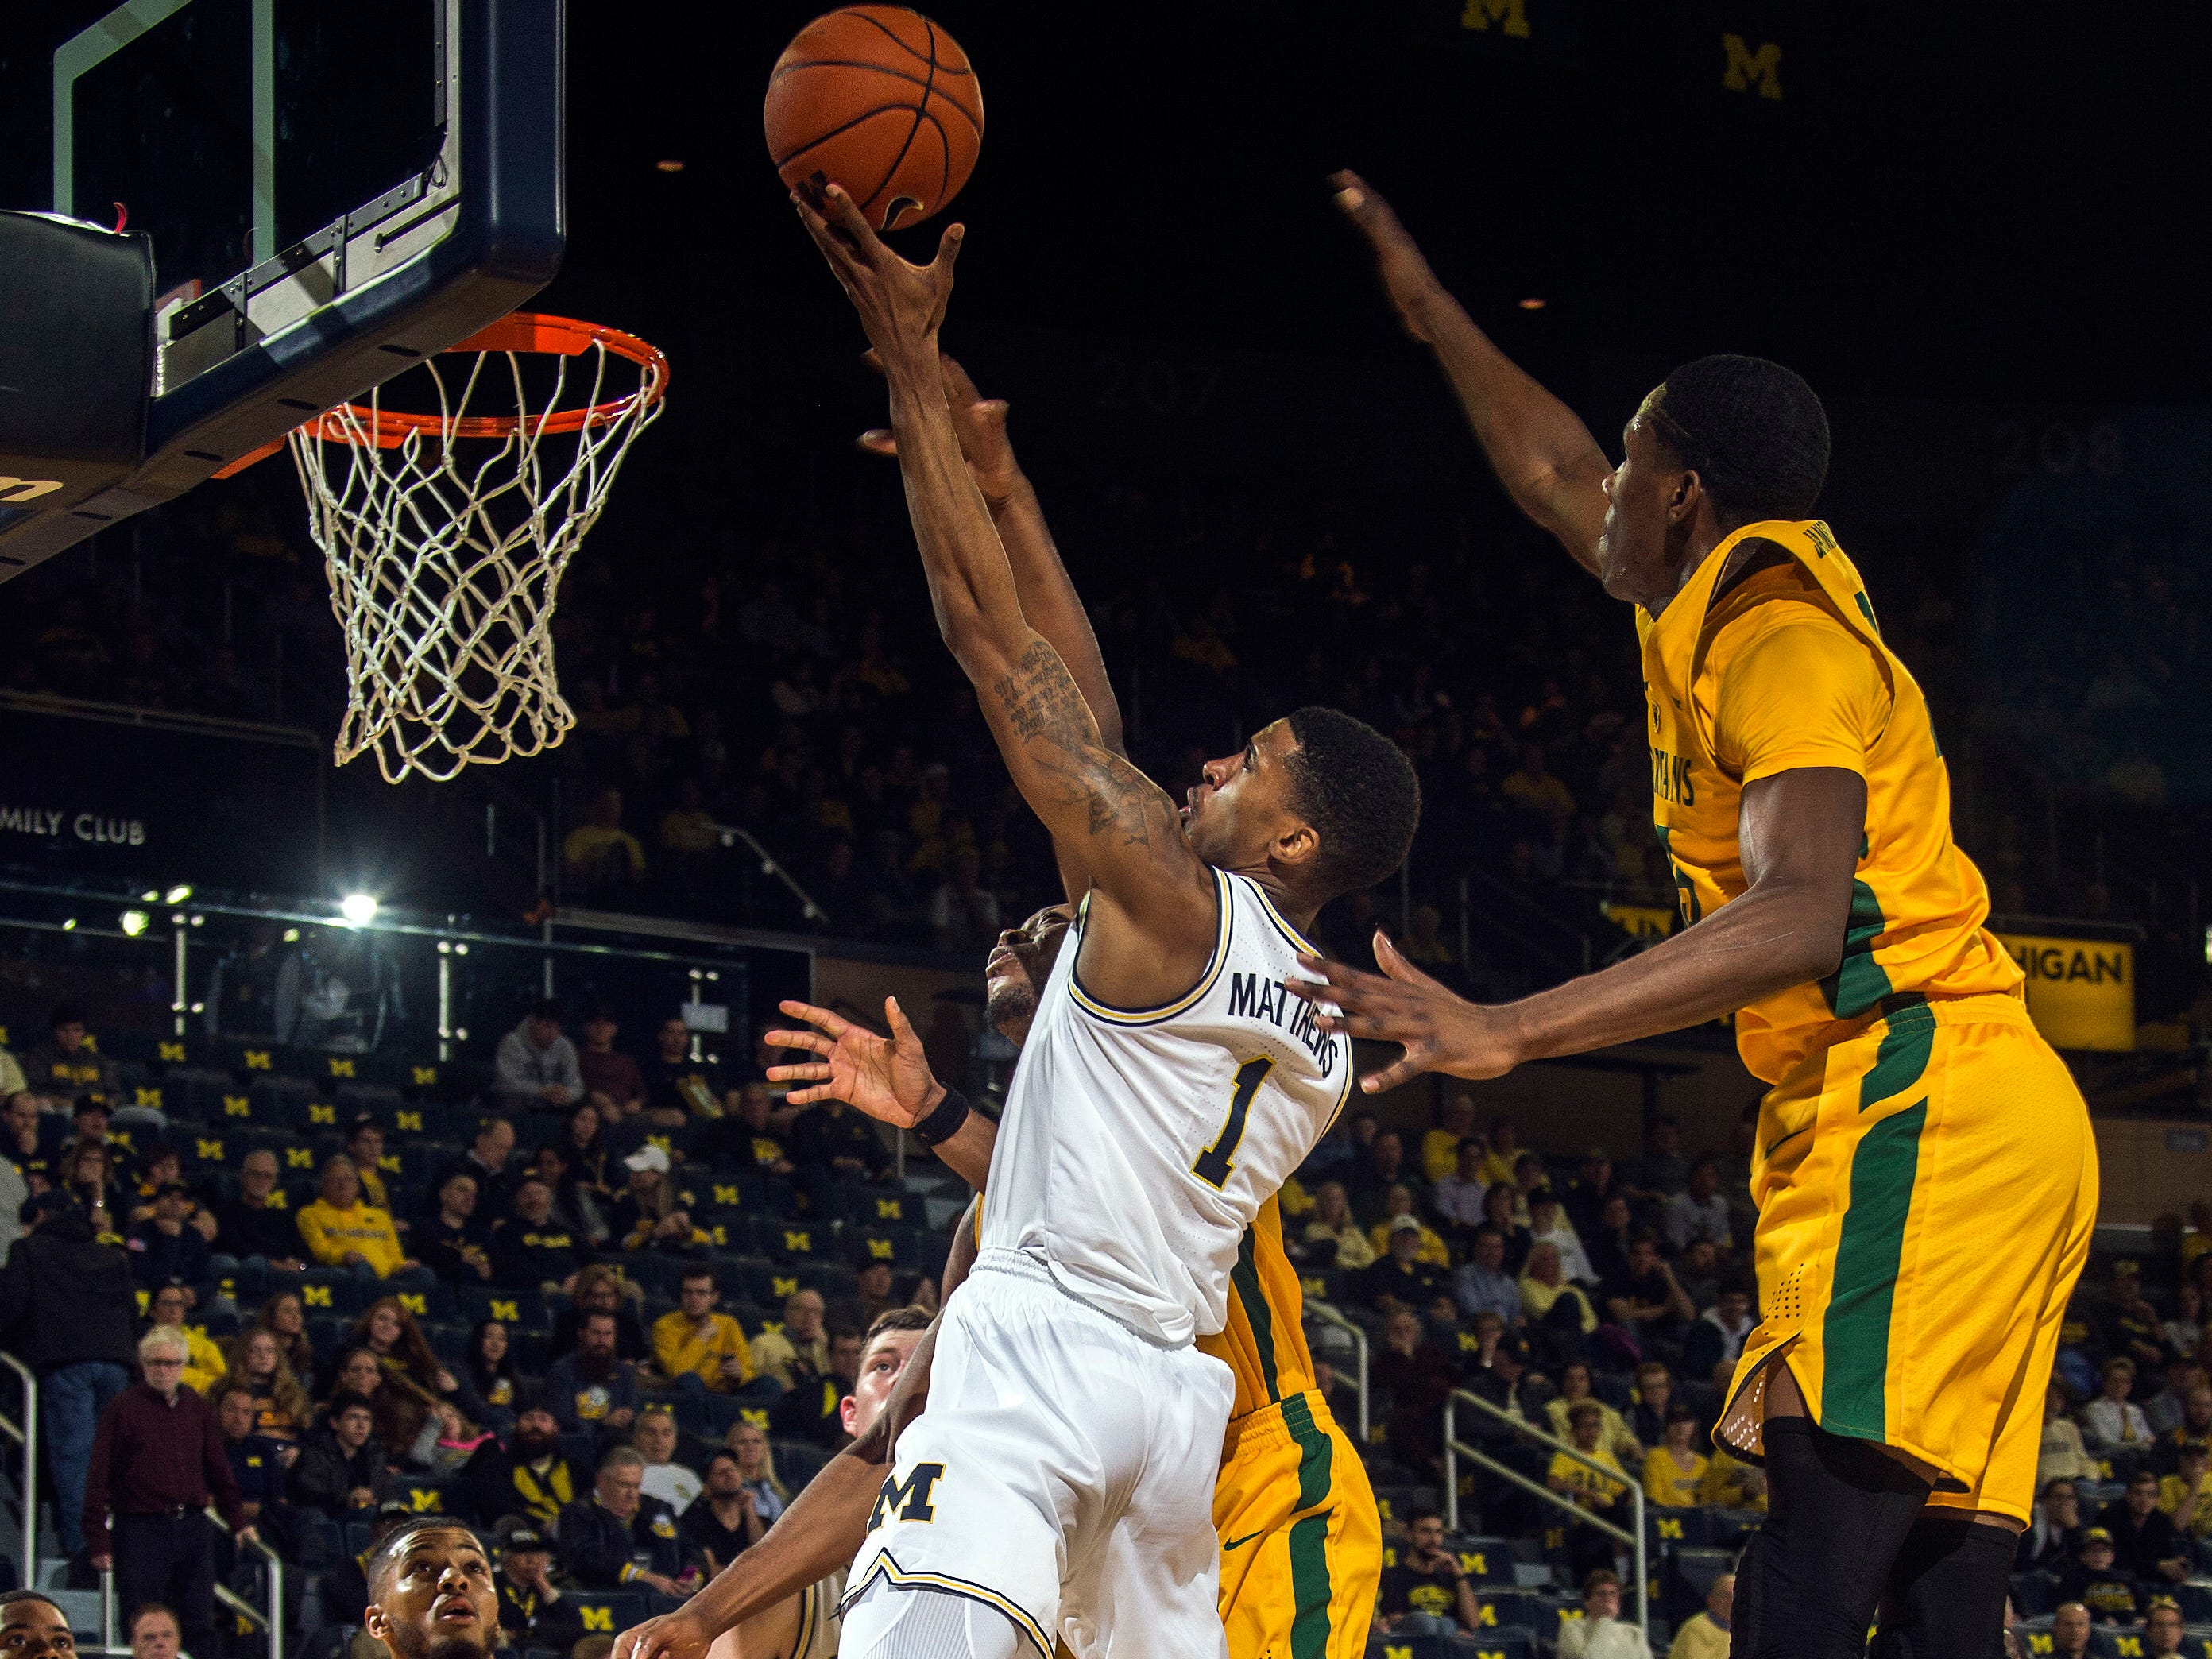 Michigan guard Charles Matthews (1) makes a layup, defended by Norfolk State guard Derrik Jamerson Jr., right, and forward Armani Branch (5) in the first half of an NCAA college basketball game at Crisler Center in Ann Arbor, Mich., Tuesday, Nov. 6, 2018.